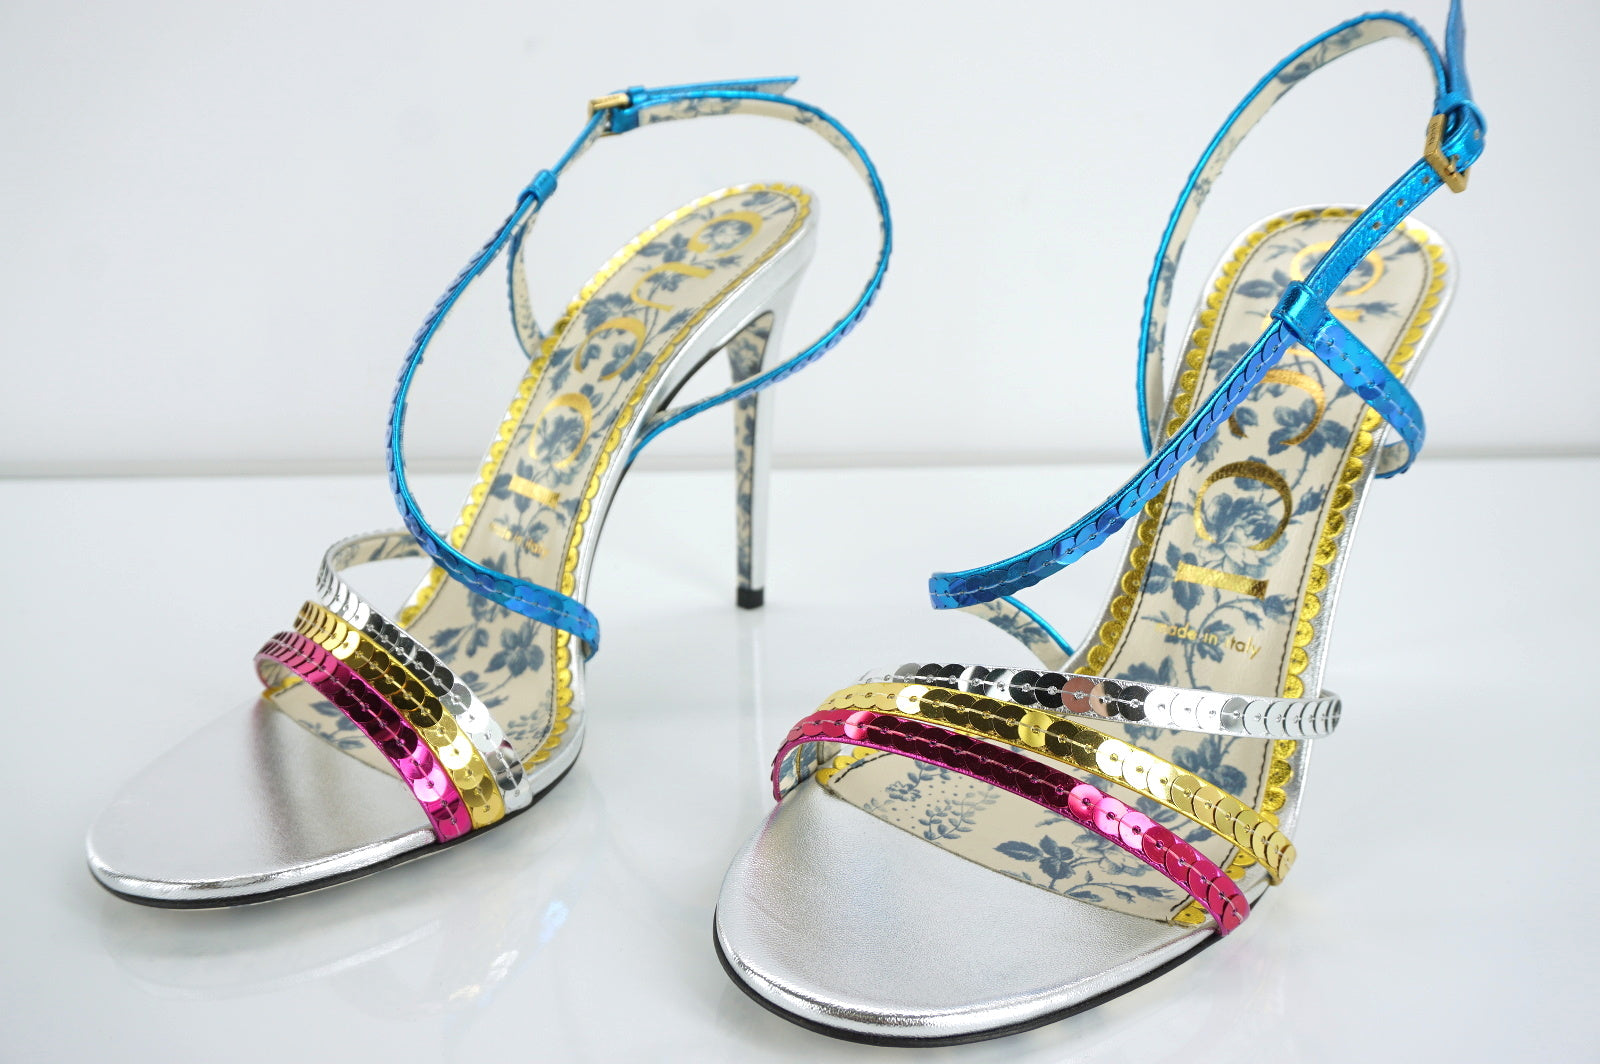 Gucci Sequin Billy Blue Pink Silver Strappy Metallic Sandals Size 39.5 NIB $980